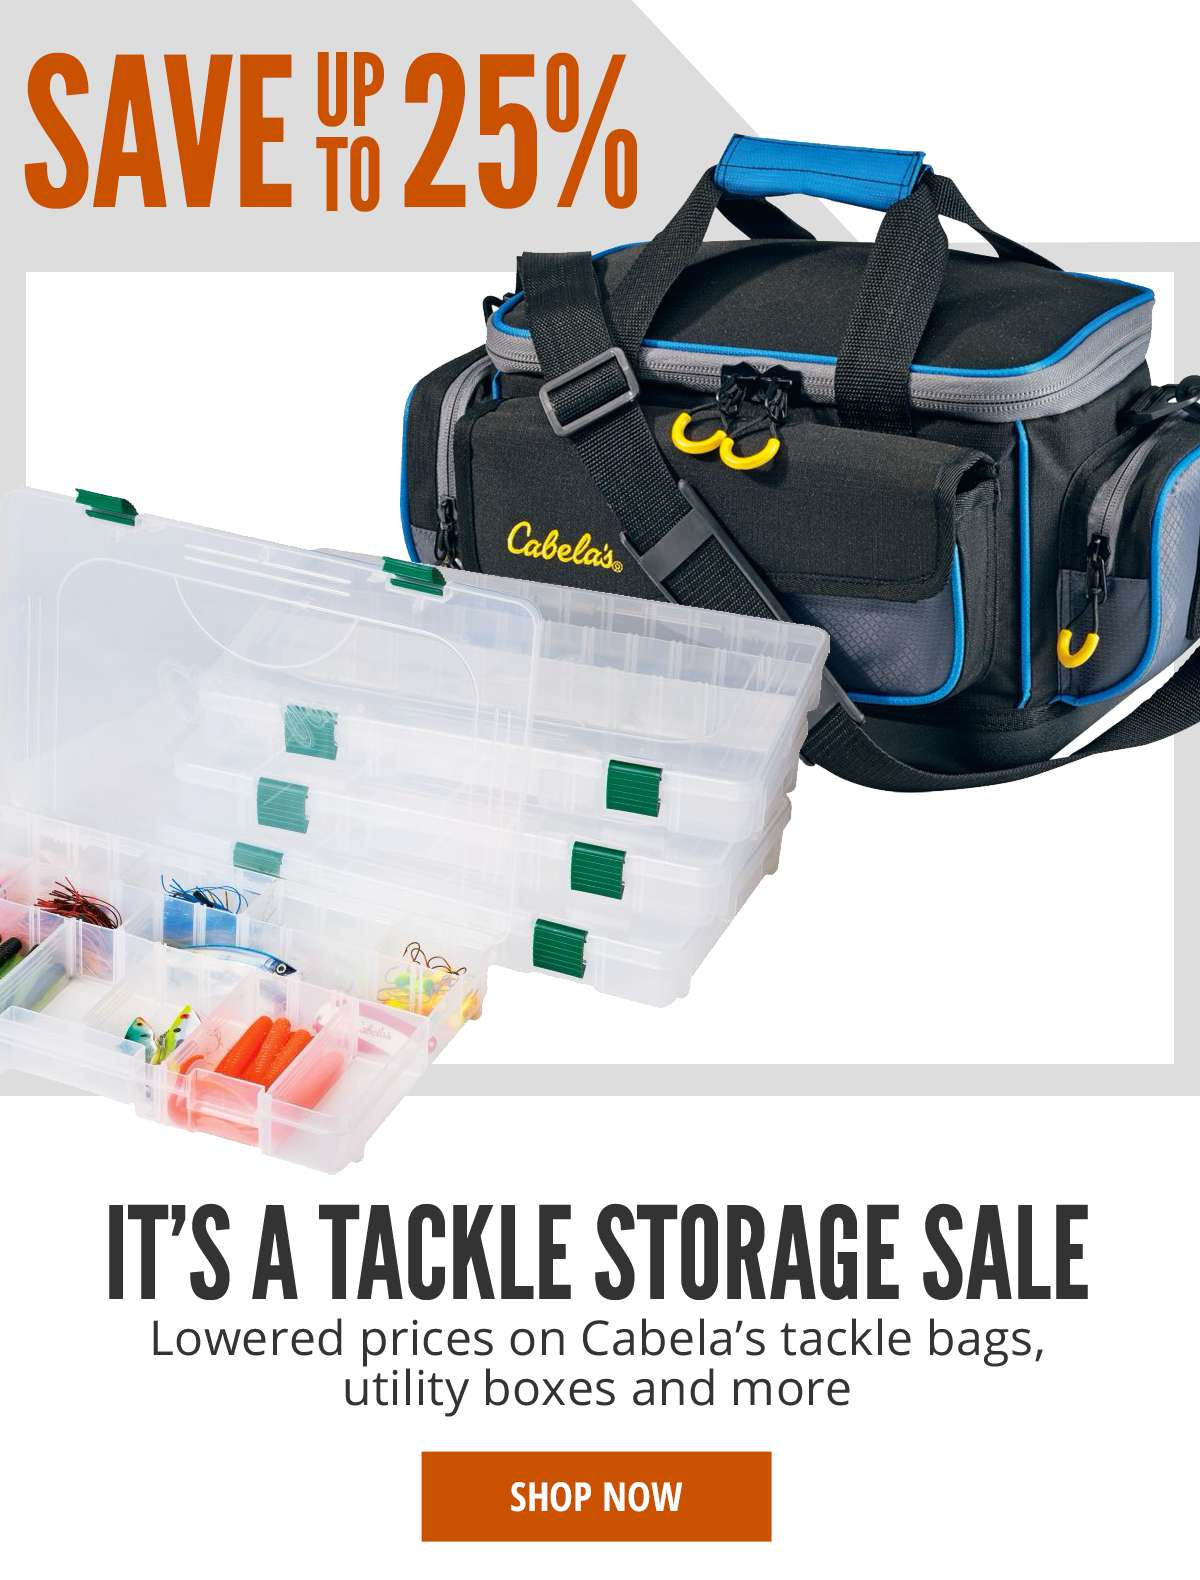 Save Up To 25% on Cabela's Tackle Storage | Shop Now